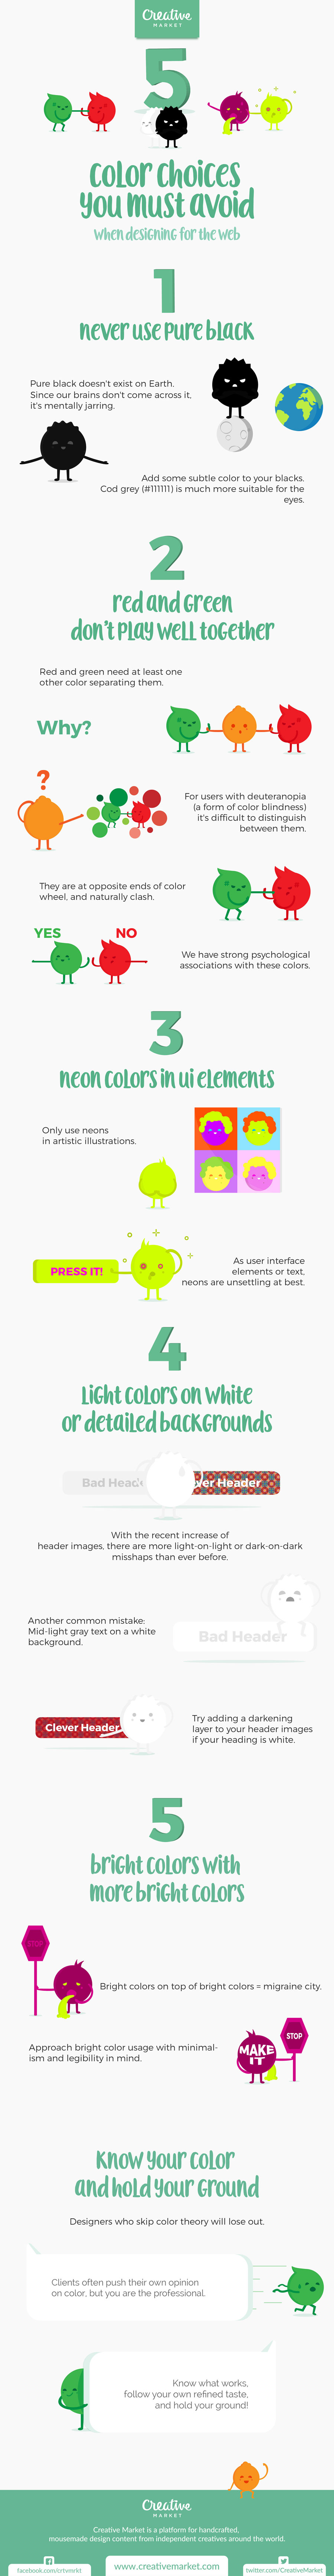 web-color-choice-infographic.jpg